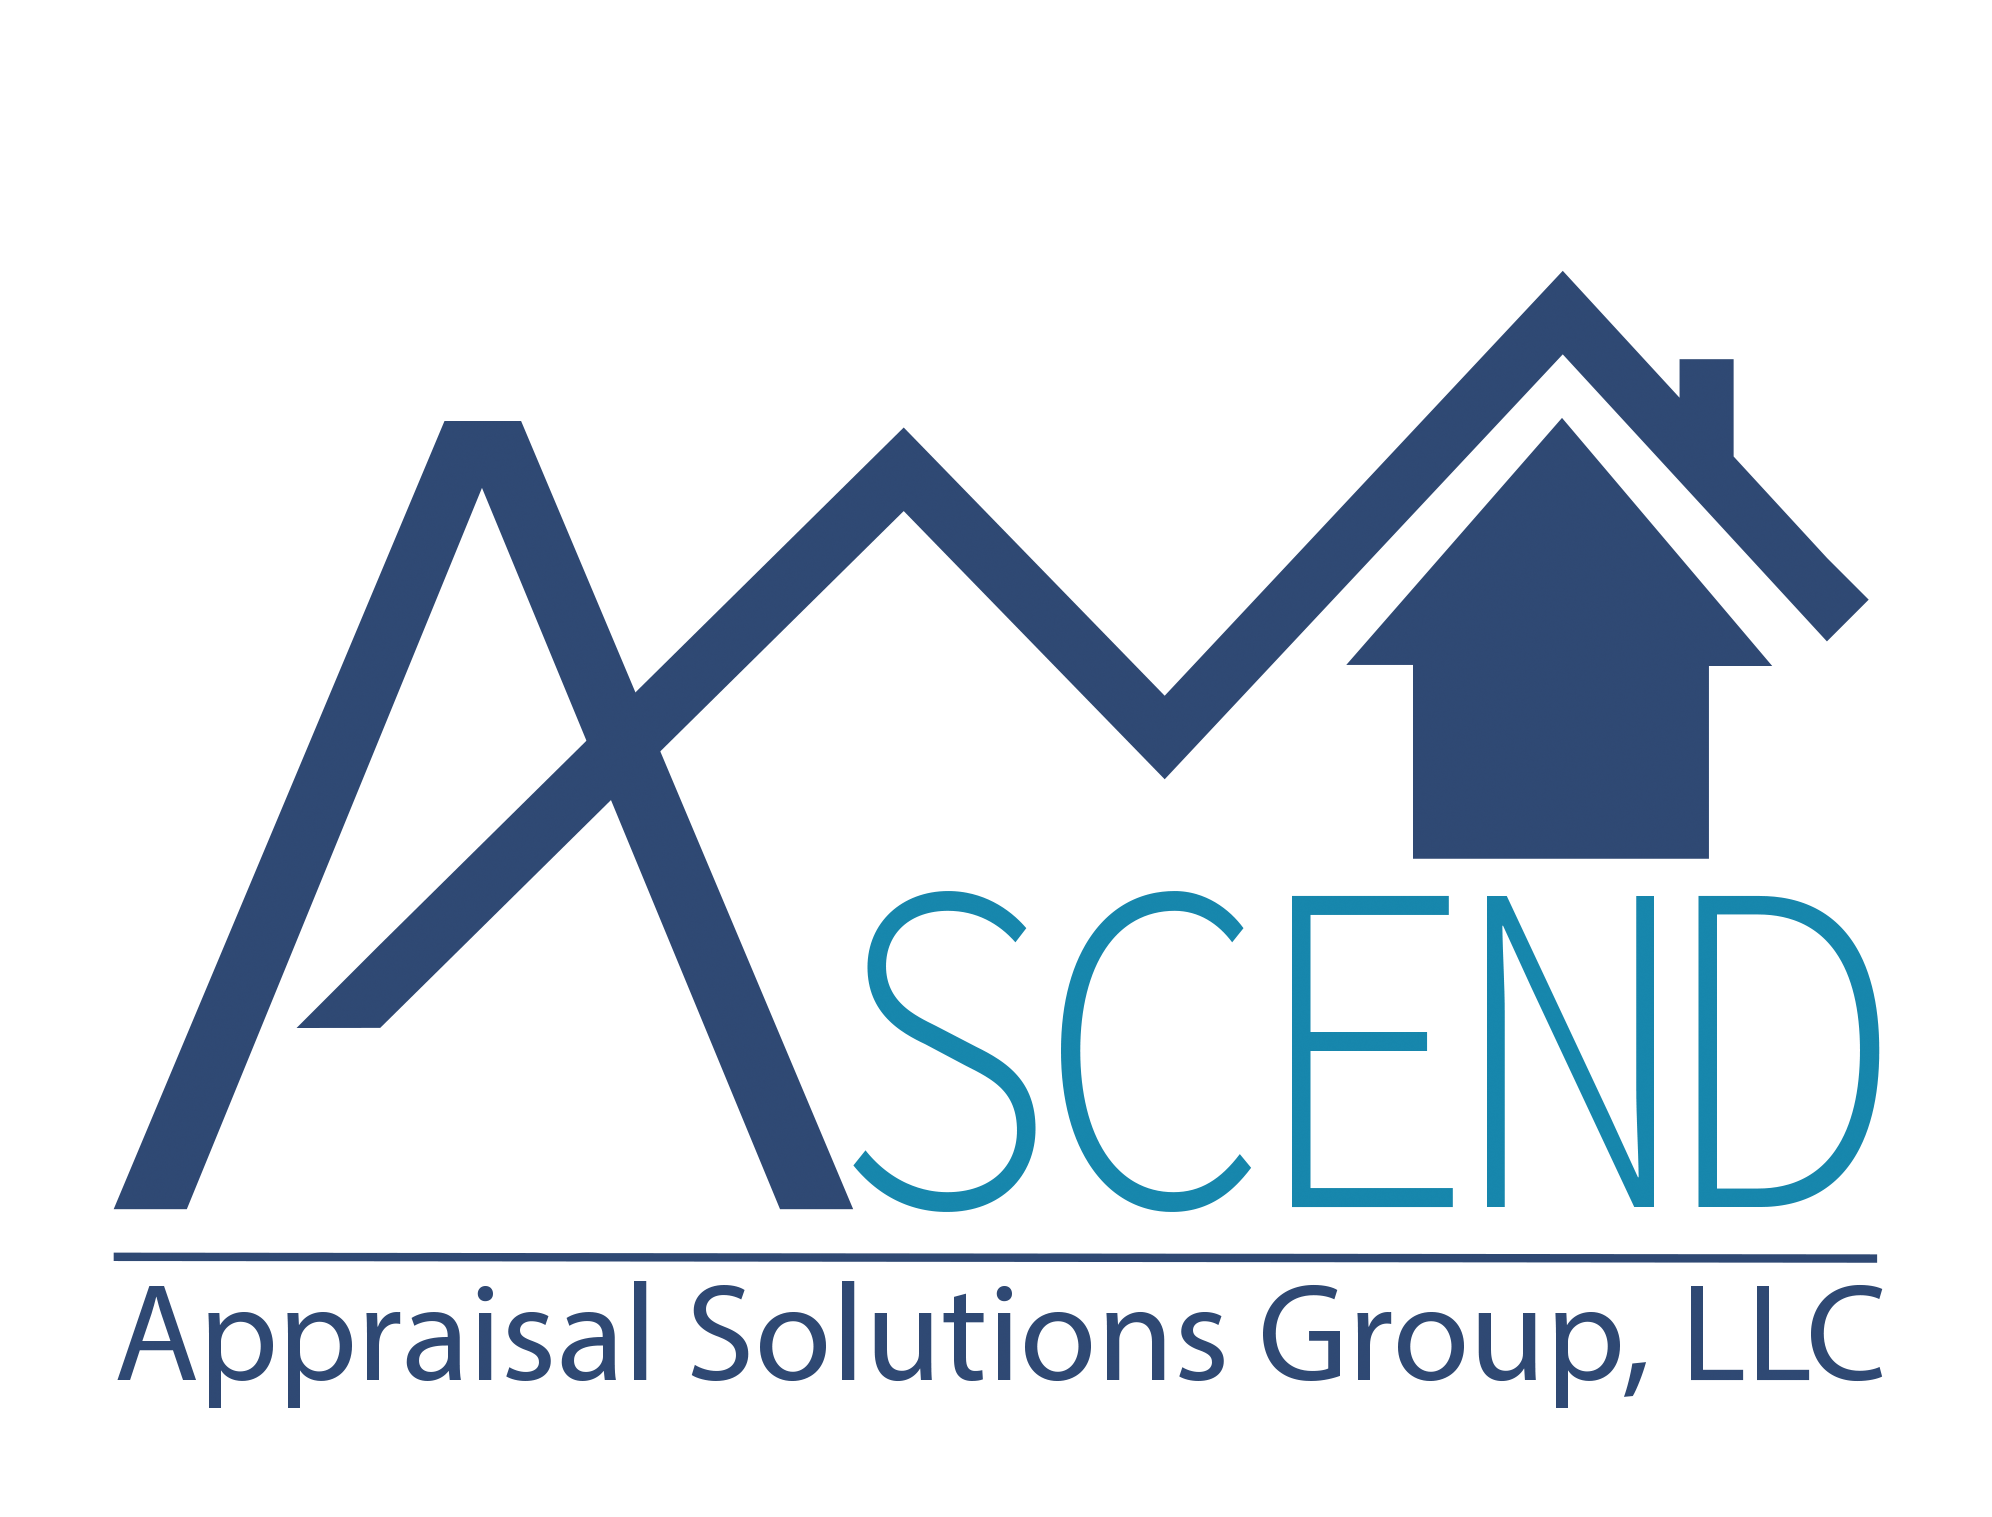 Ascend Appraisal Solutions Group, LLC